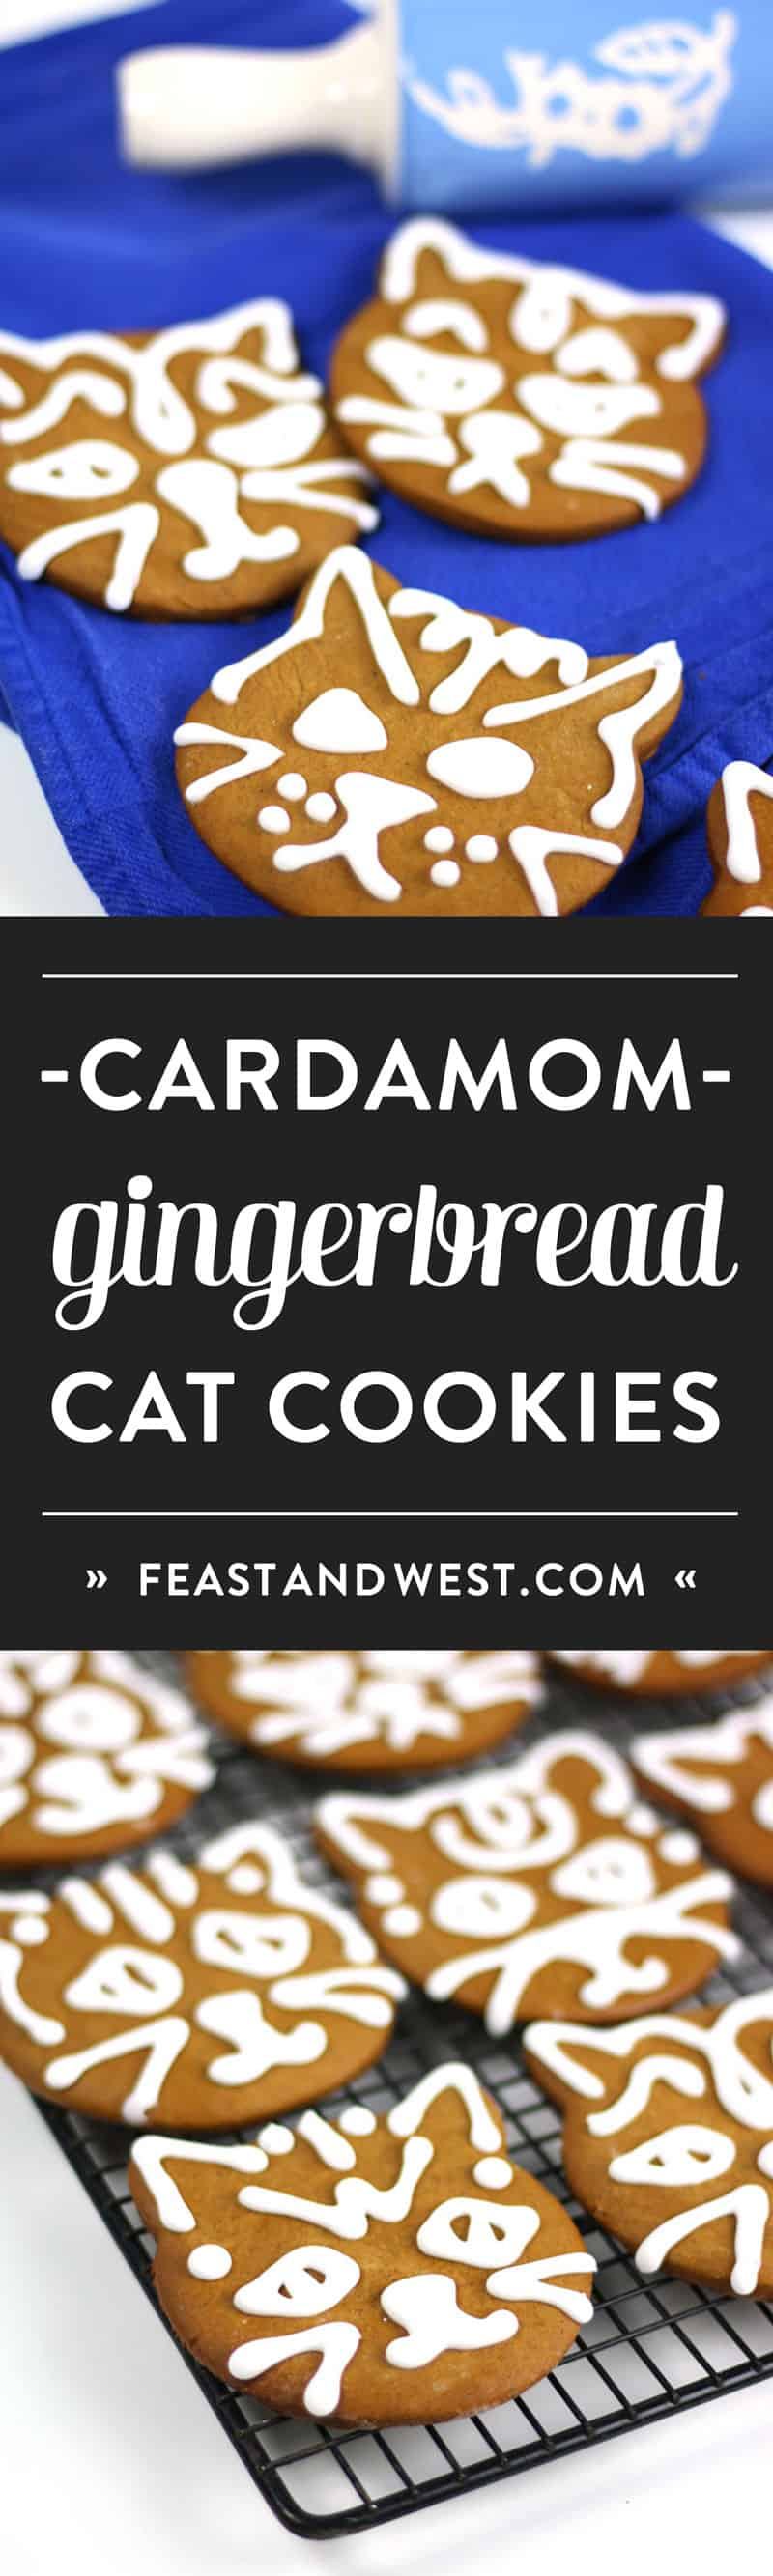 Cardamom Ginger Cat Gingerbread Cookies are the best and quirkiest way to celebrate the holidays. Bursting with baking spices, anyone who bites into these Christmas cookies will love all the flavor and chewy texture. The cat cookie cutter is a cute and untraditional touch, and royal icing makes them official. #sweetestseasoncookies (via feastandwest.com)